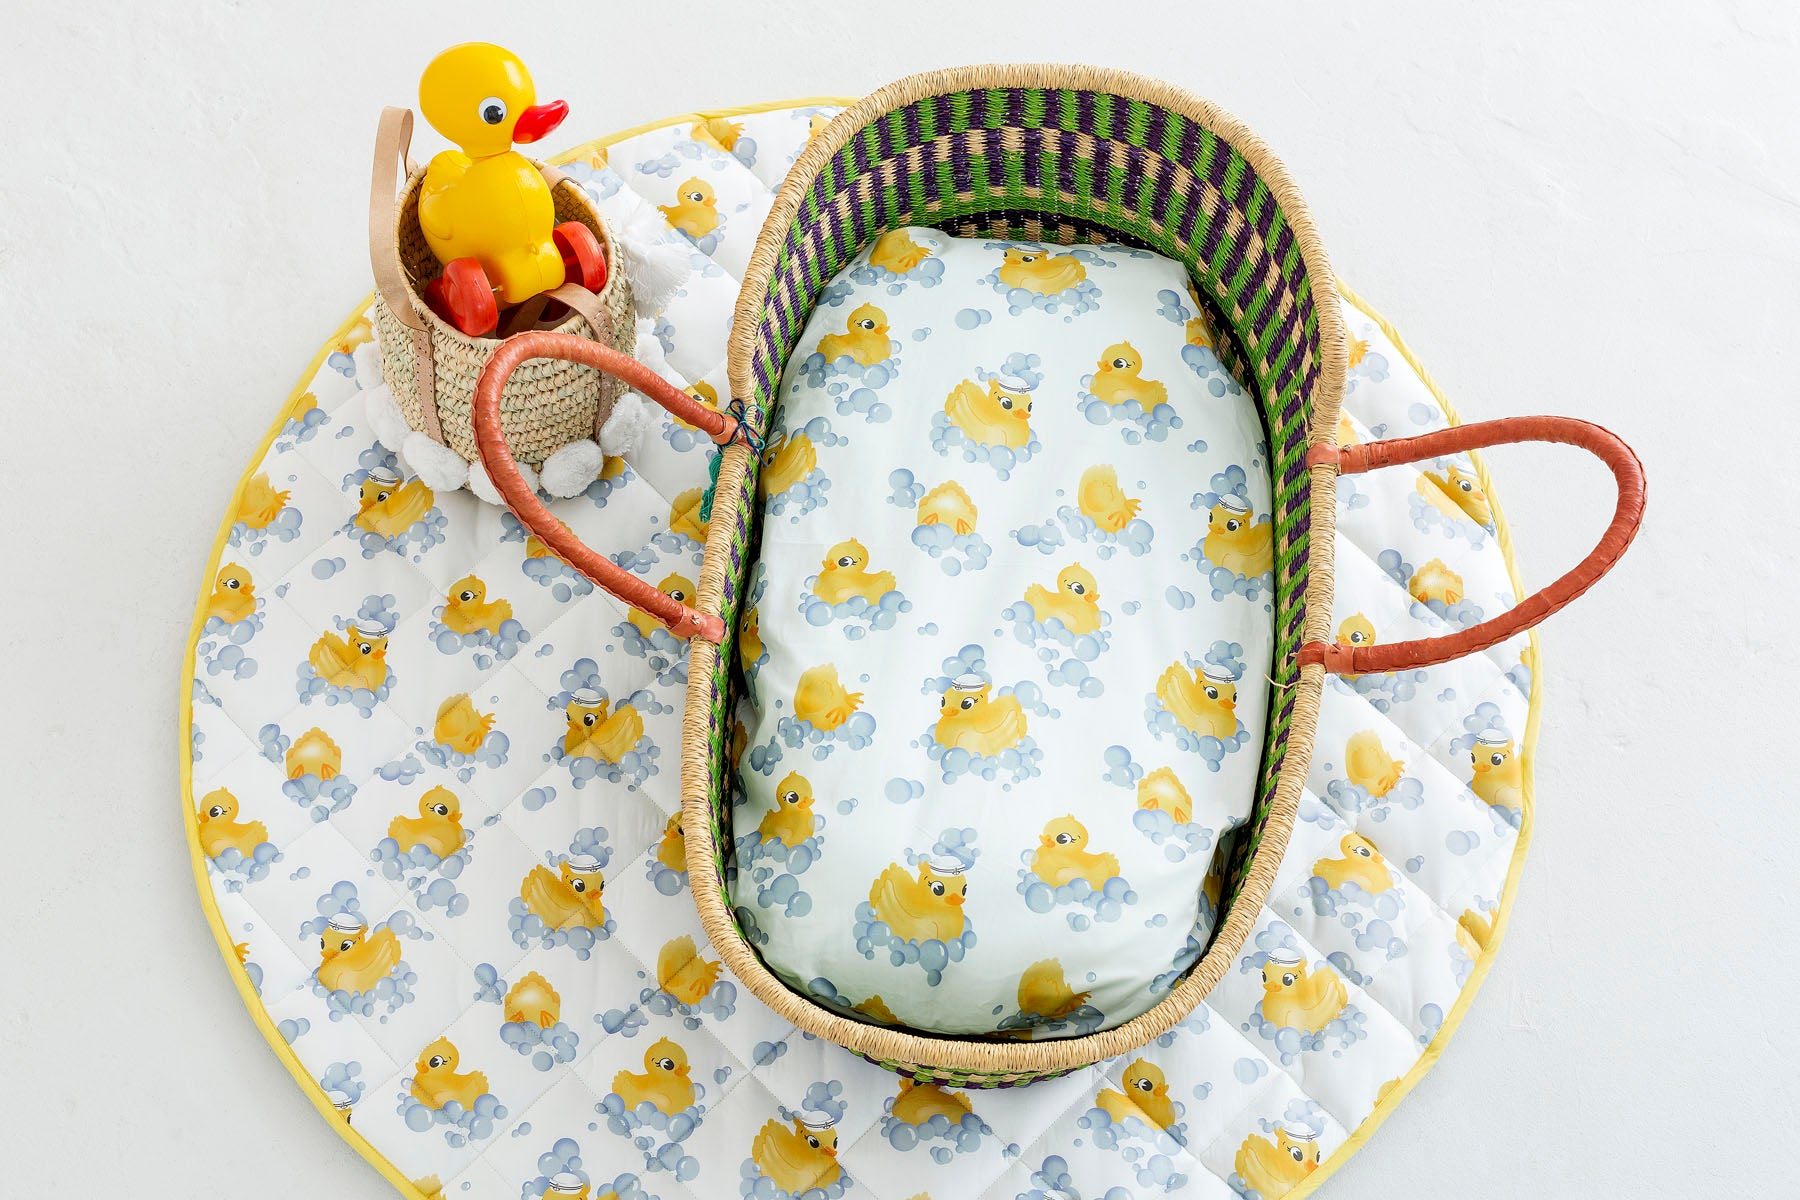 Rubber Ducky Play Mat